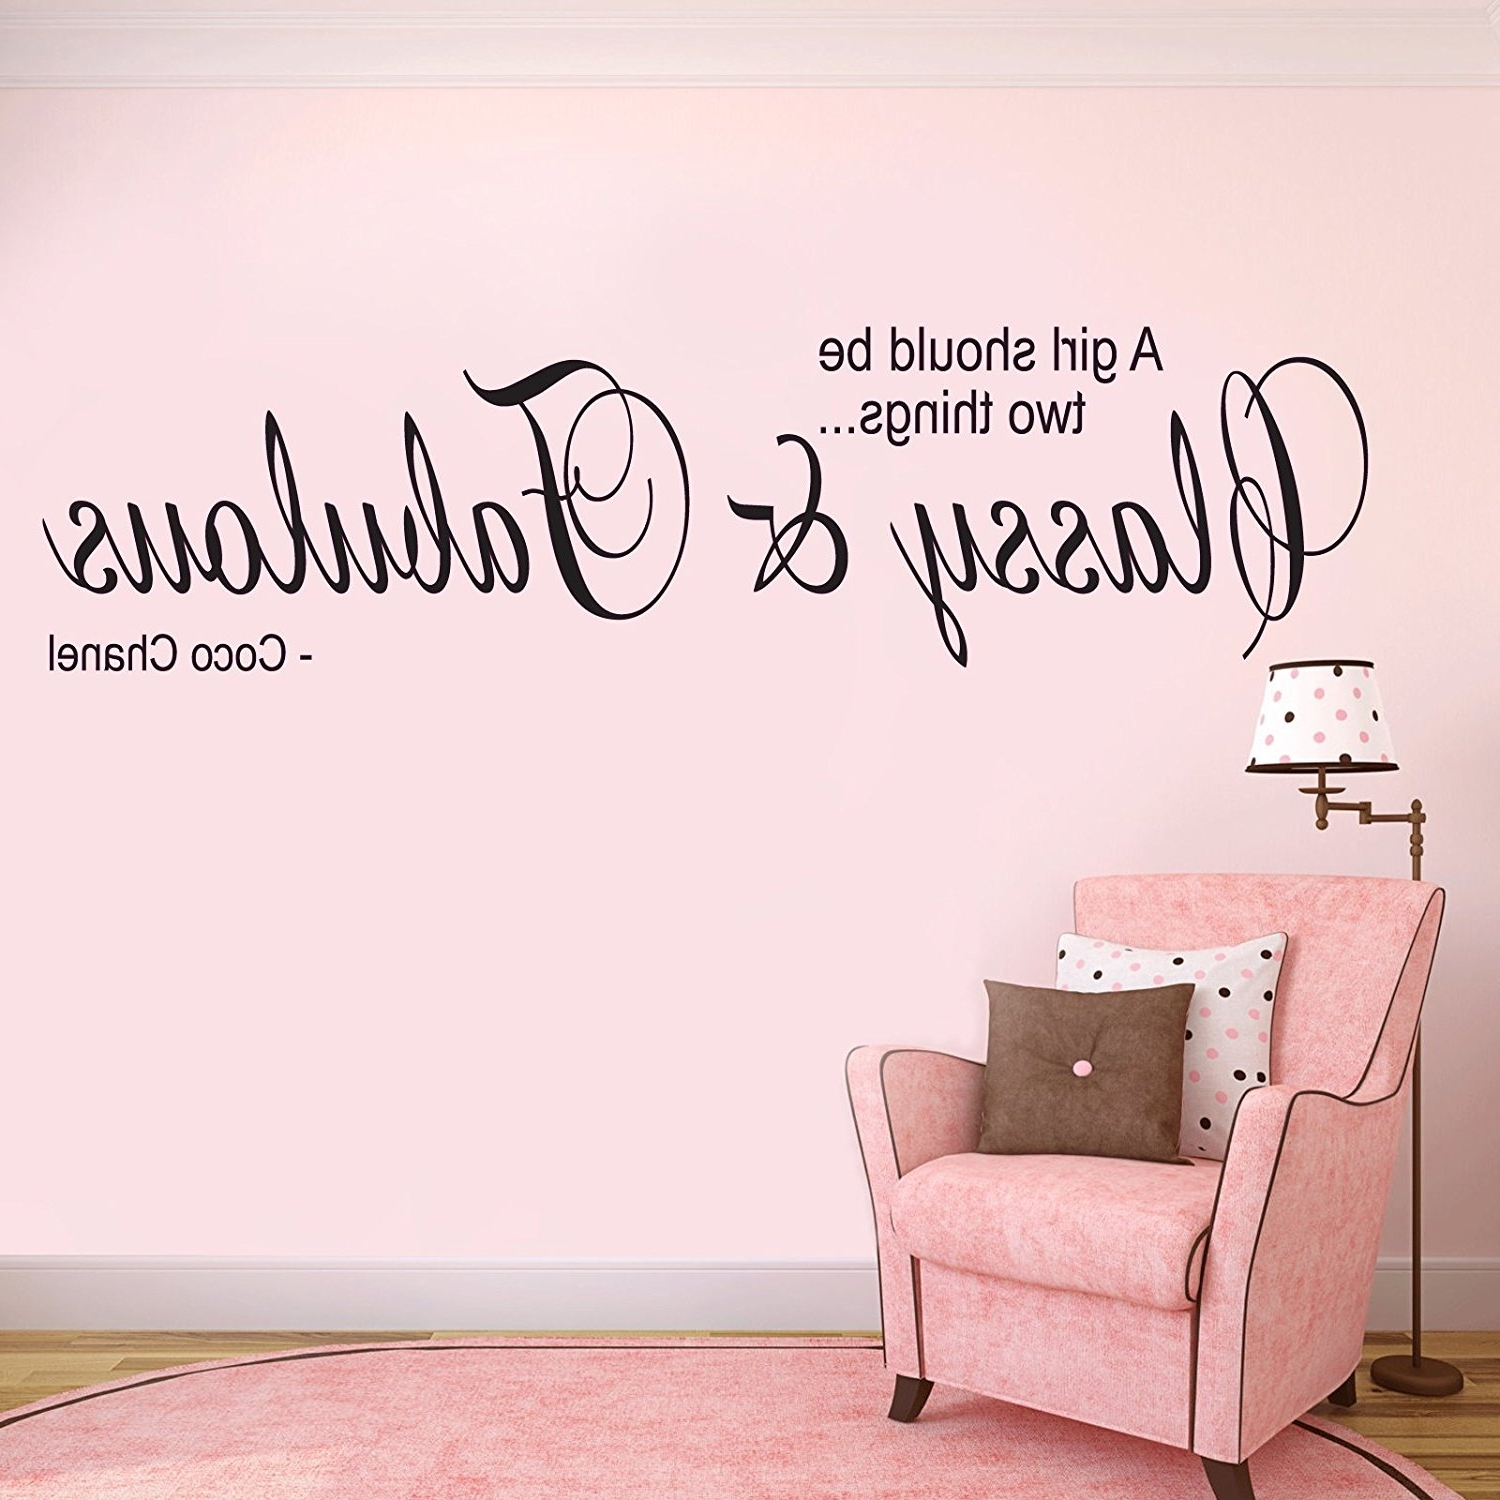 Widely Used Coco Chanel Wall Stickers With V&c Designs Ltd (Tm) Coco Chanel – Classy And Fabulous Quote (View 15 of 15)